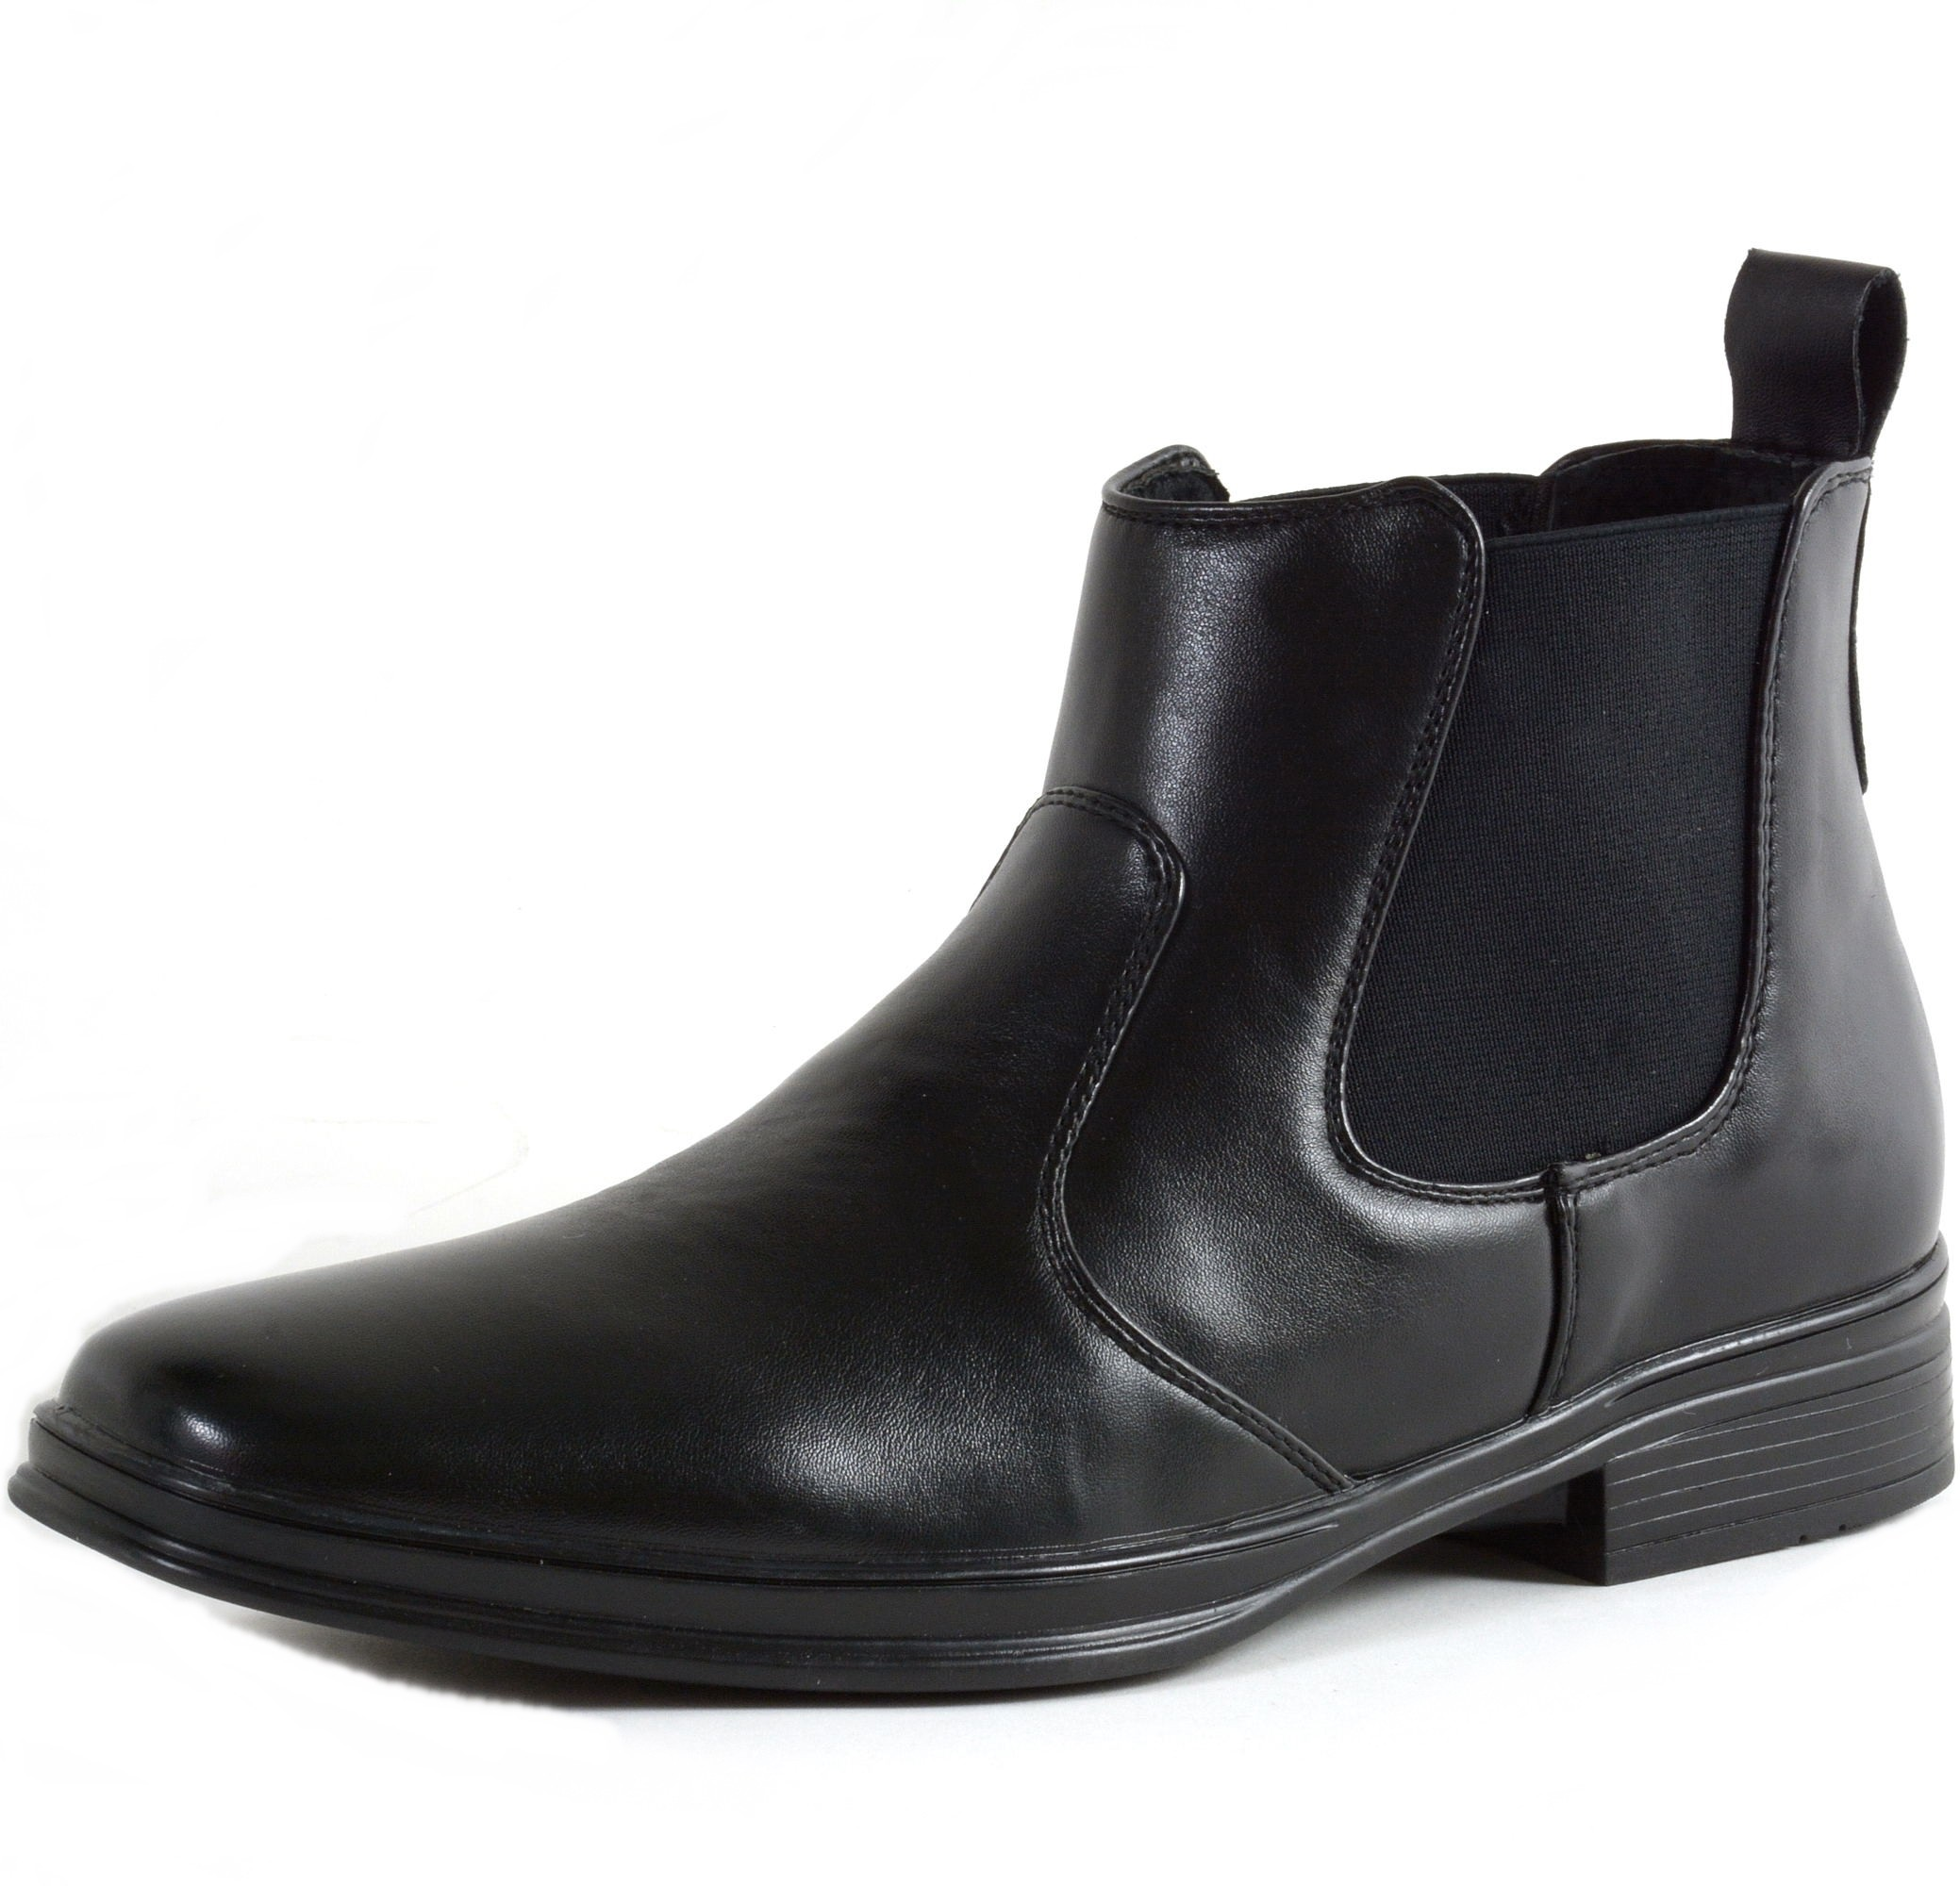 Shop Mens Chelsea Boots on the official Dr. Martens website. View popular Dr. Martens like the null, Vegan Boot, and Vegan Boot in .